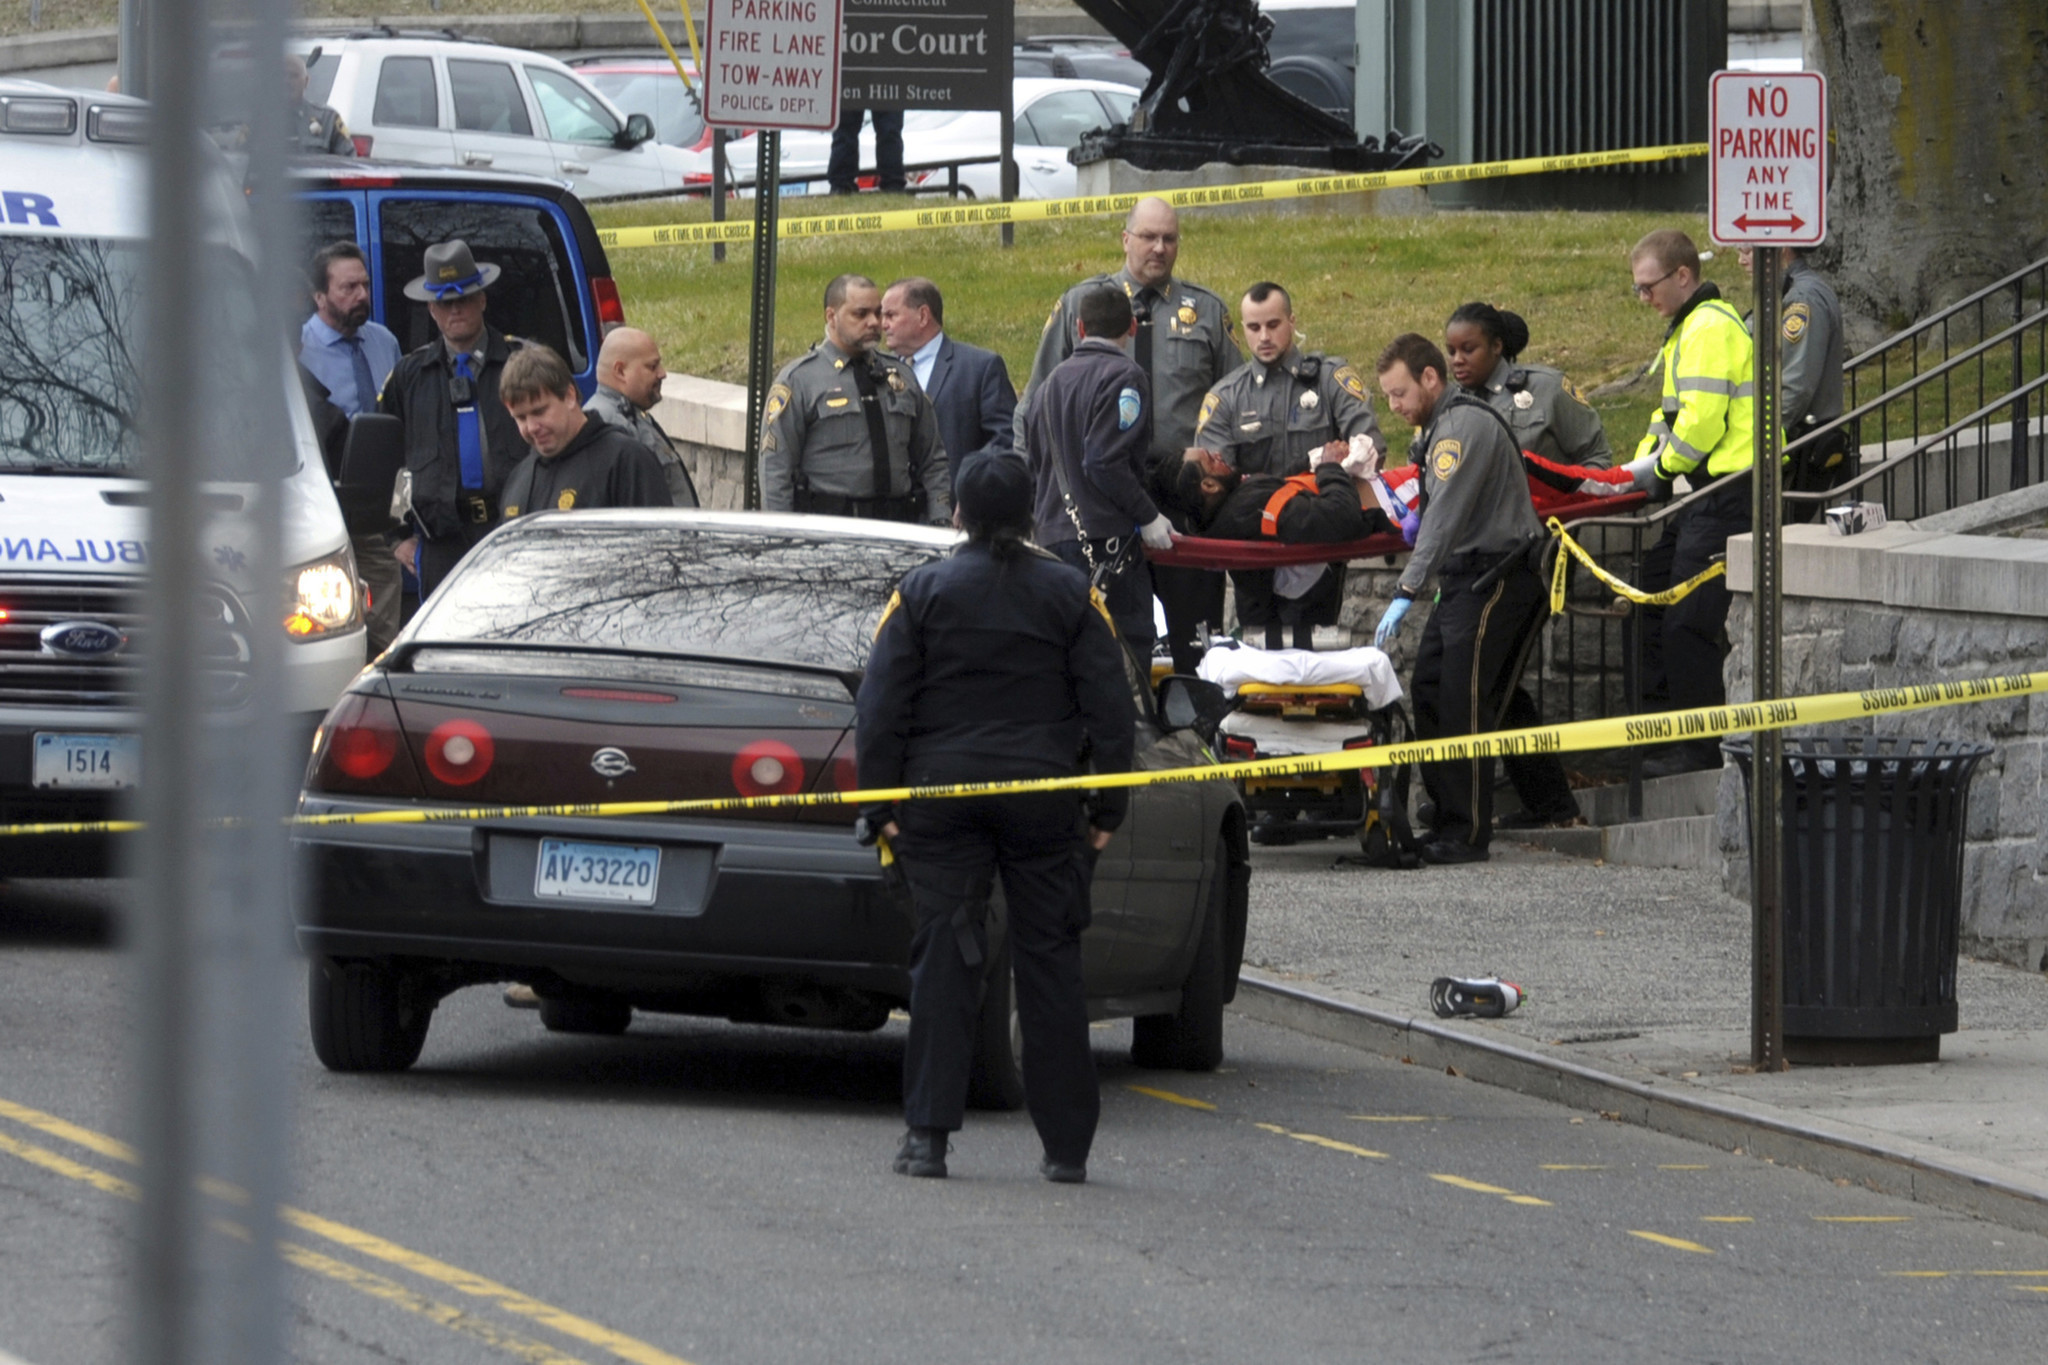 4 people shot outside Connecticut courthouse